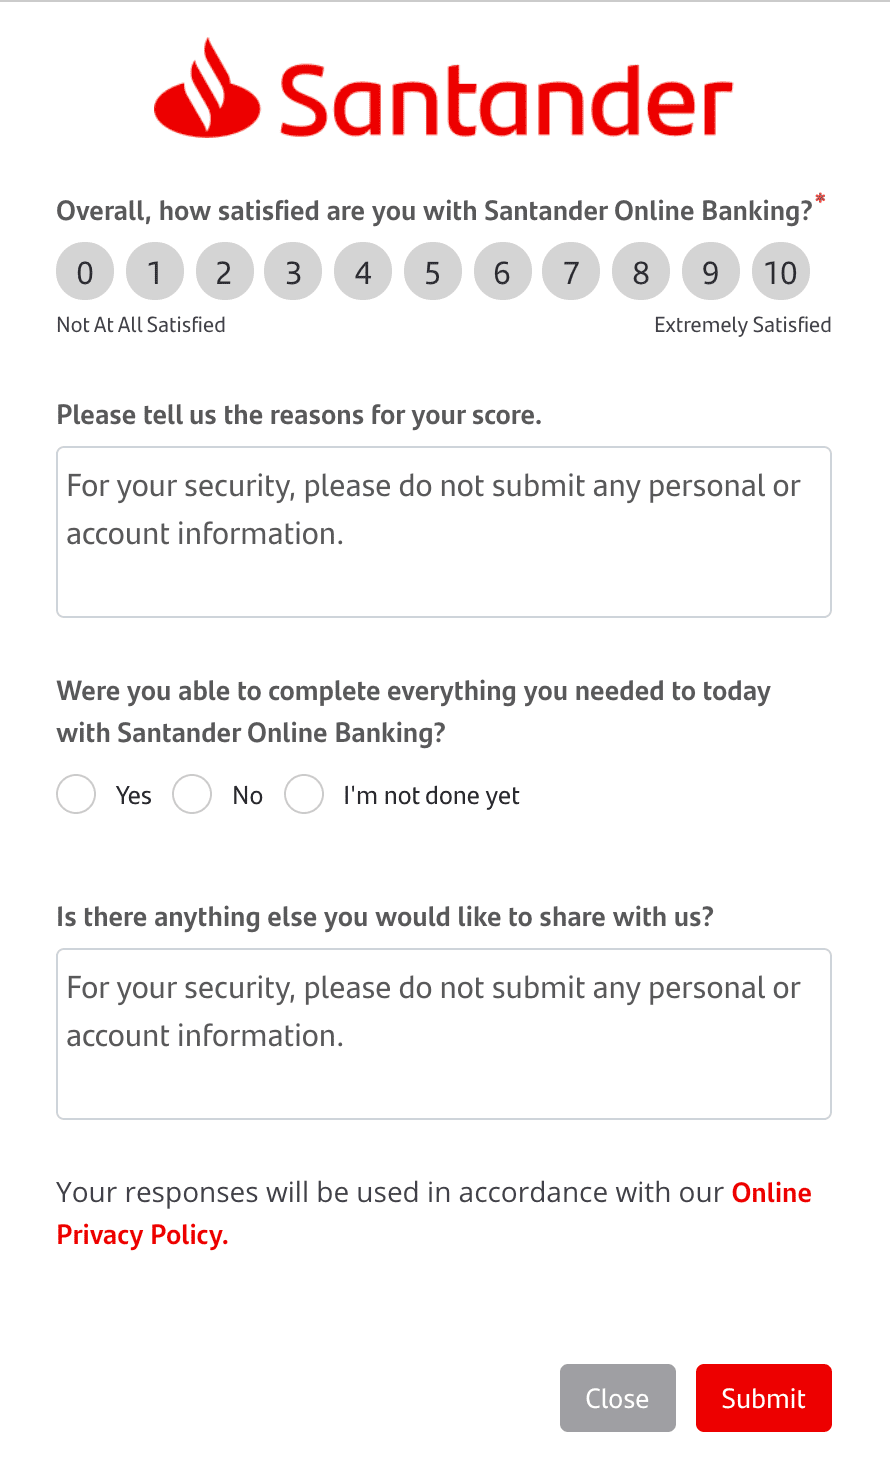 Closed-ended and open-ended customer service feedback survey from Santander Bank